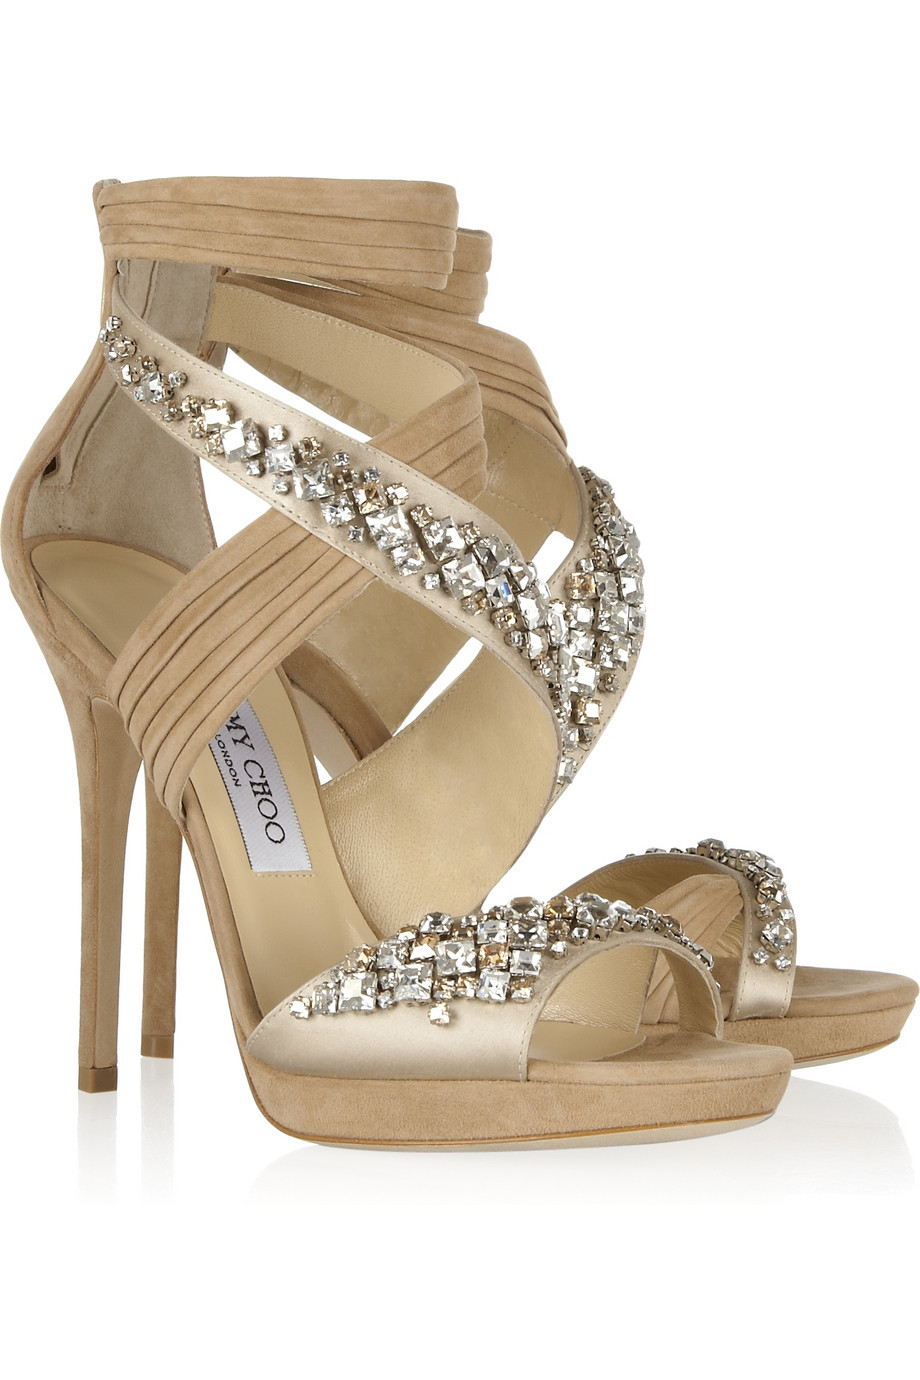 Cheap Jimmy Choo Sandals - Shoes Jimmy Choo Kani Swarovski Crystalembellished Satin And Suede Sandals Sand 1